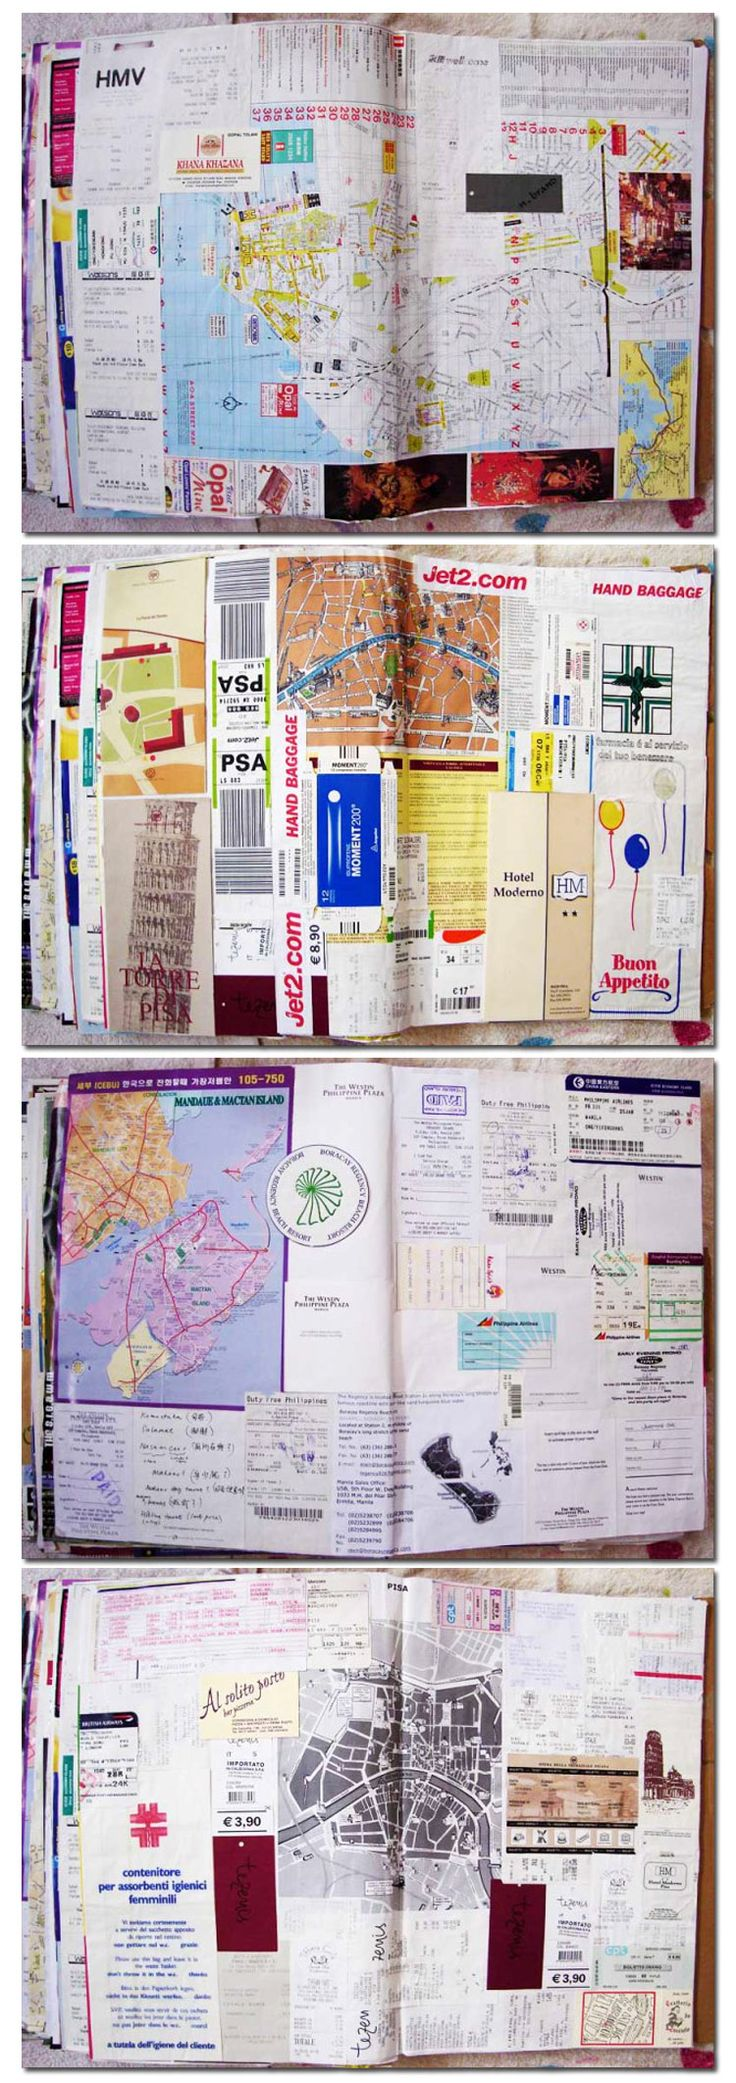 Travel Scrapbook Idea   http://shantihshalaholisticarts.com/global-travel-scrapbook-series-%E7%8E%AF%E7%90%83%E6%97%85%E8%A1%8C%E5%89%AA%E8%B4%B4%E7%B0%BF%E7%B3%BB%E5%88%97/